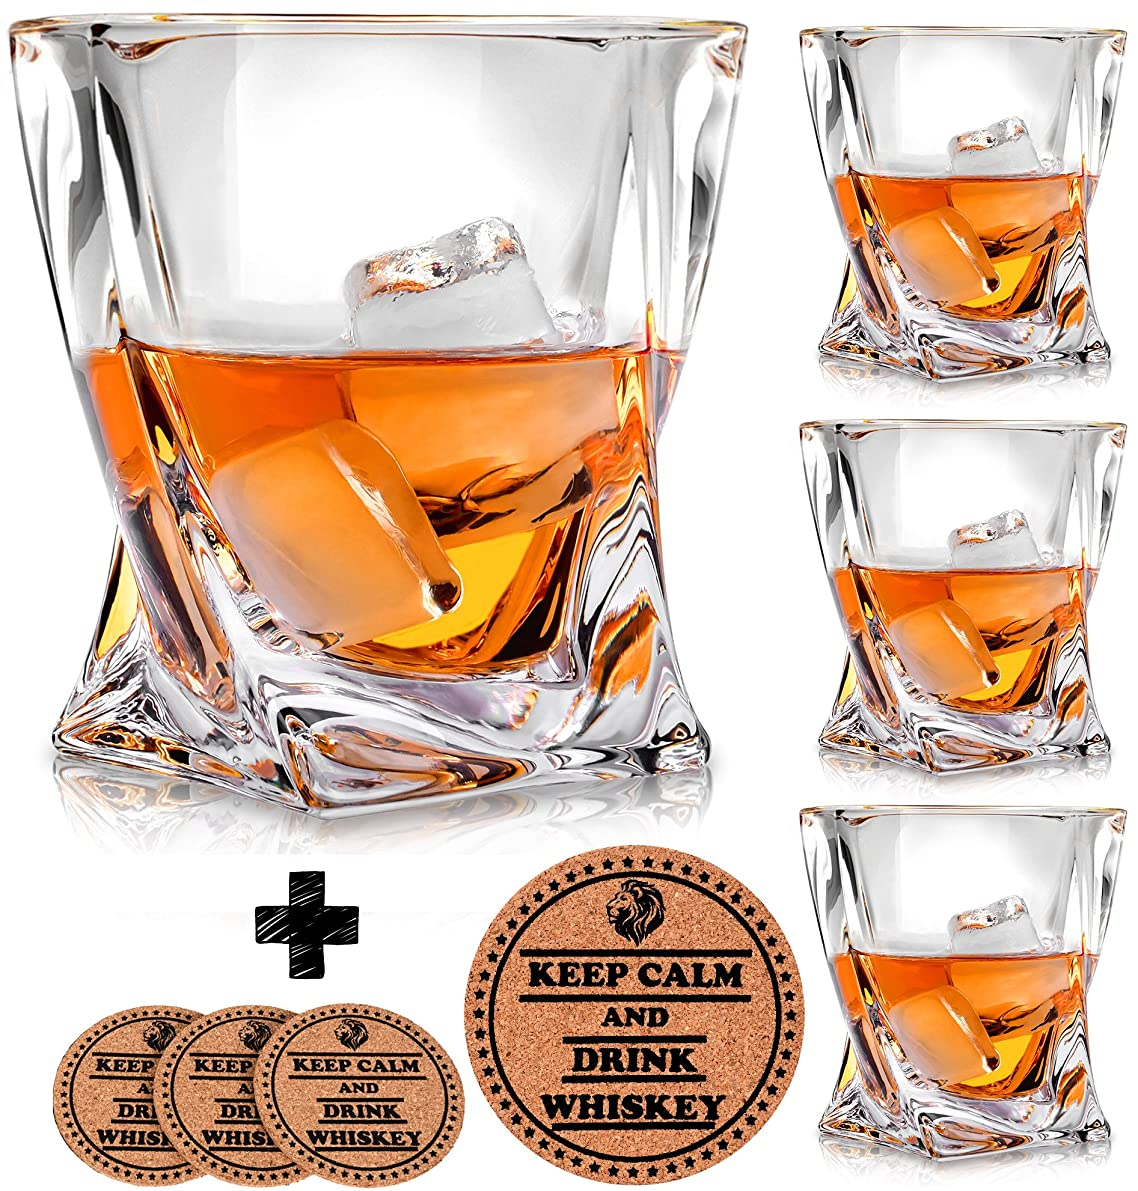 Twist Whiskey Glasses - Set of 4 - by Vaci + 4 Drink Coasters, Ultra Clarity Crystal Scotch Glass, Malt or Bourbon, Glassware Gift Set